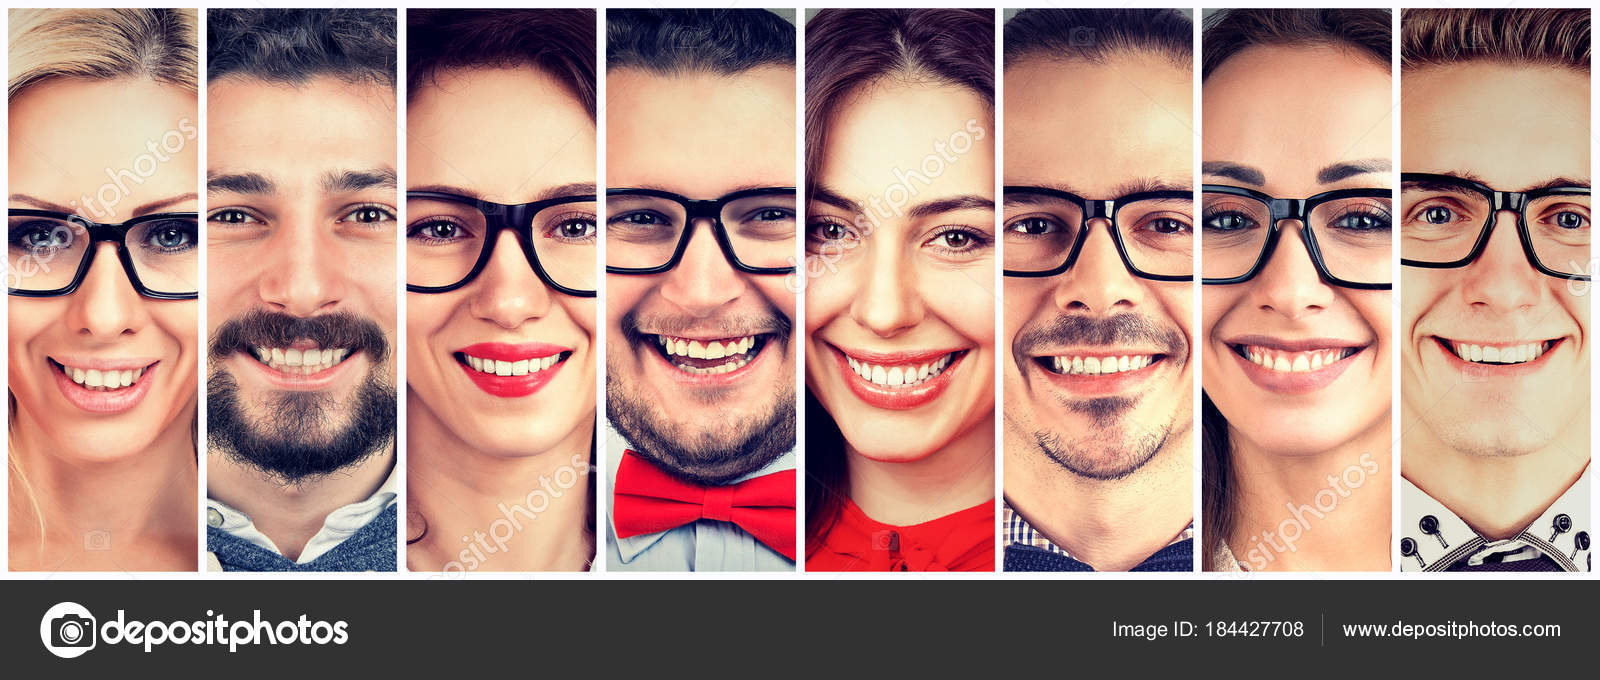 smiling faces happy group of multiethnic people stock photo